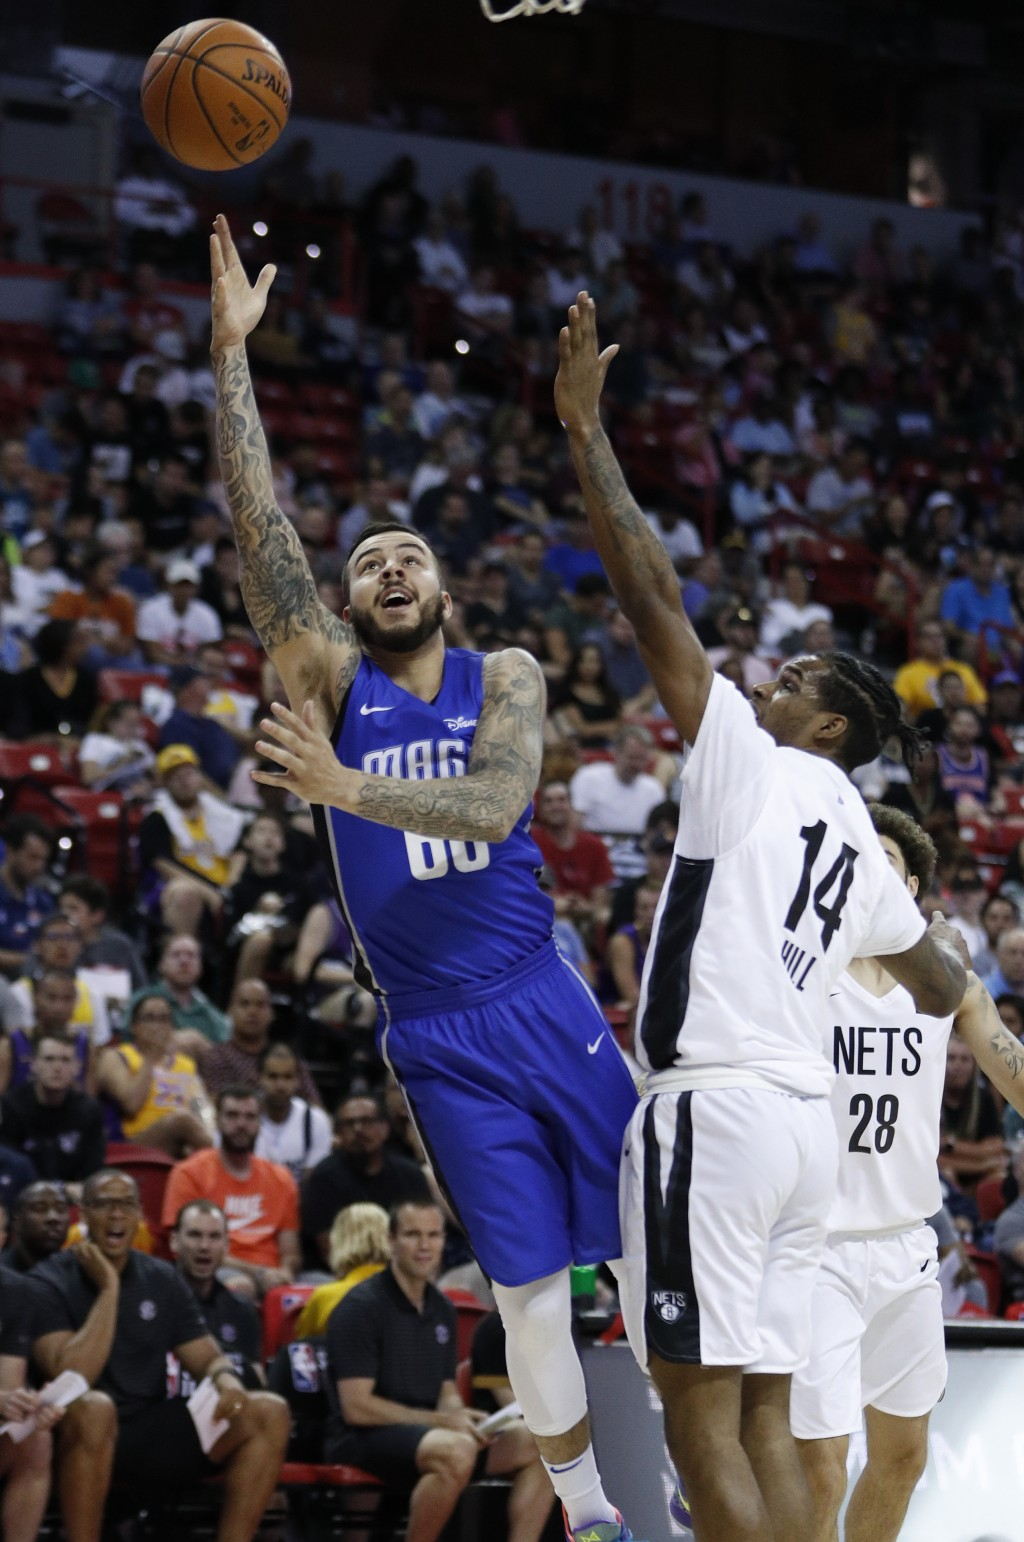 Orlando Magic's Gabe York, left, shoots around Brooklyn Nets' Ahmed Hill during the second half of an NBA summer league basketball game Wednesday, Jul